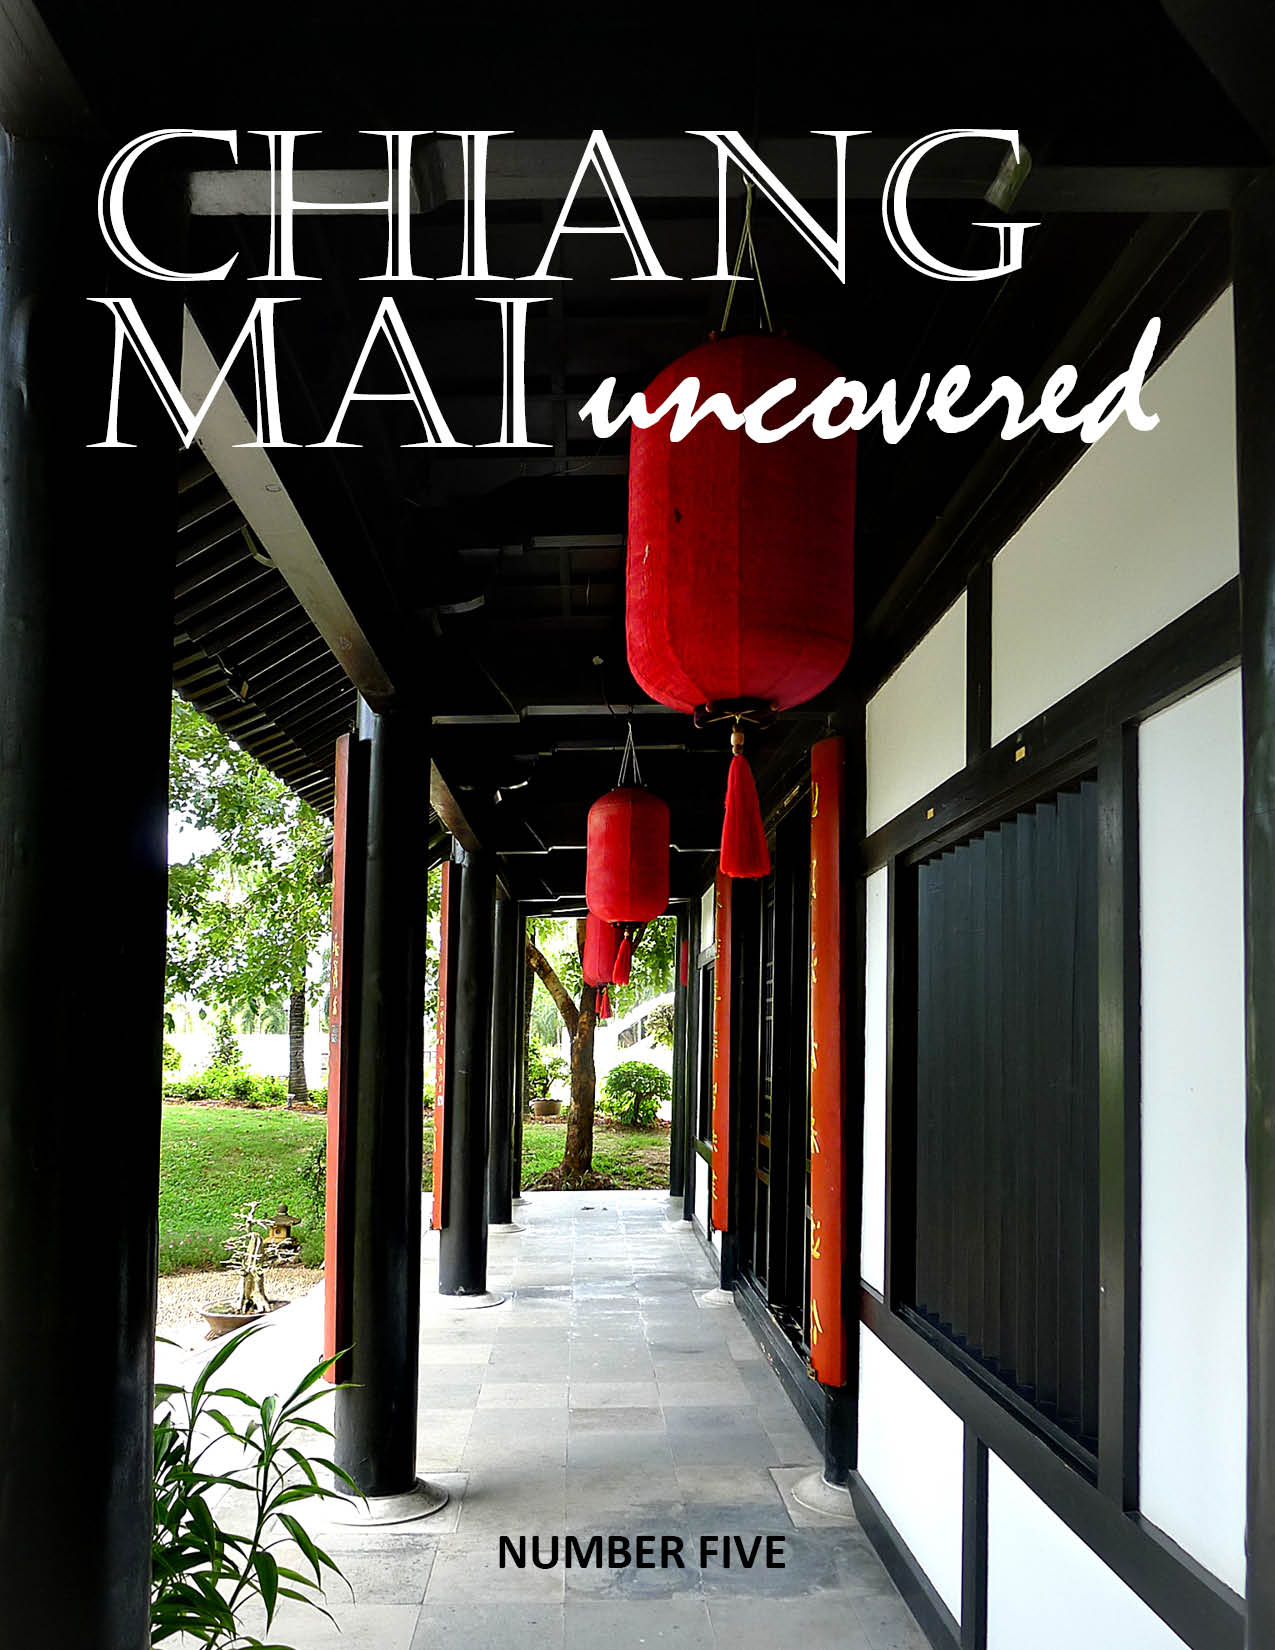 Chiang-Mai-Uncovered-comp